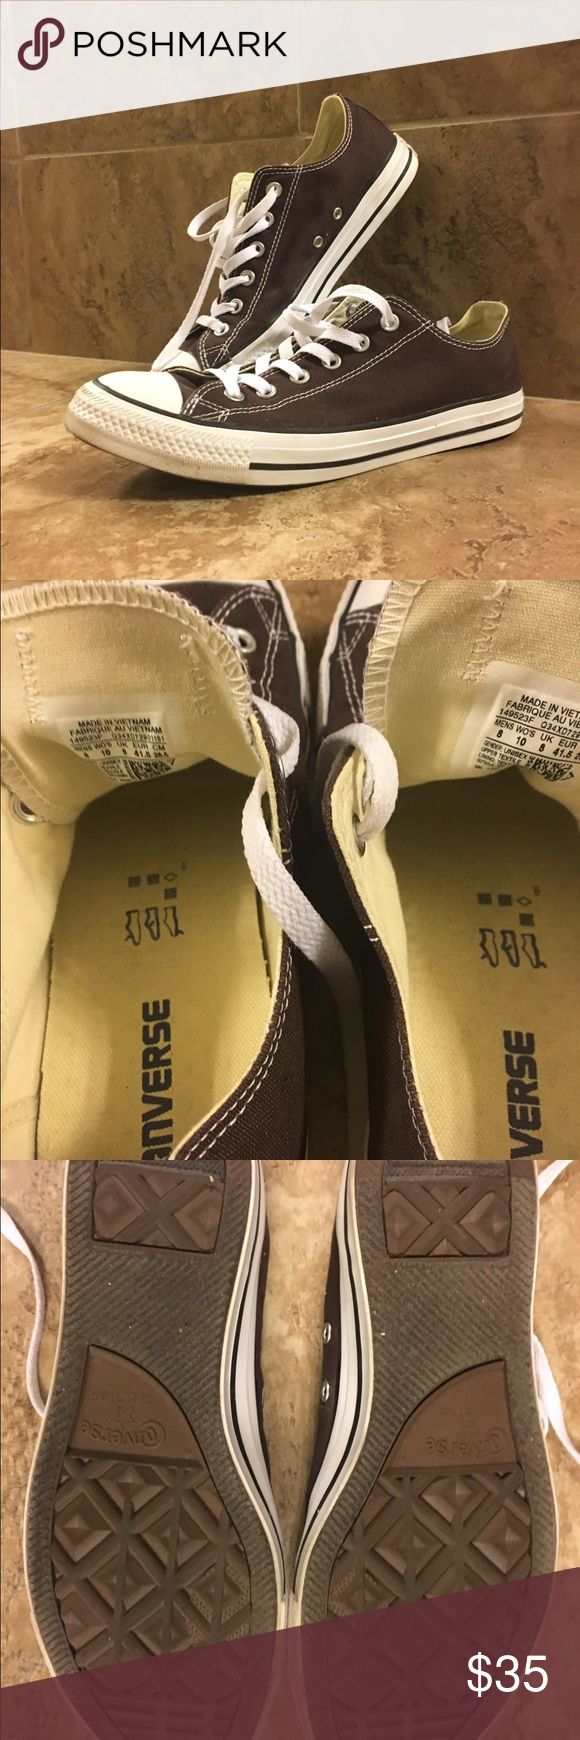 Brown Converse All Star Low Top Sneakers These Brown Low Top Converse All Stars are in excellent condition. They've once been worn once or twice. Soles are almost flawless!  US Size Women's 10/Men's 8 Converse Shoes Sneakers